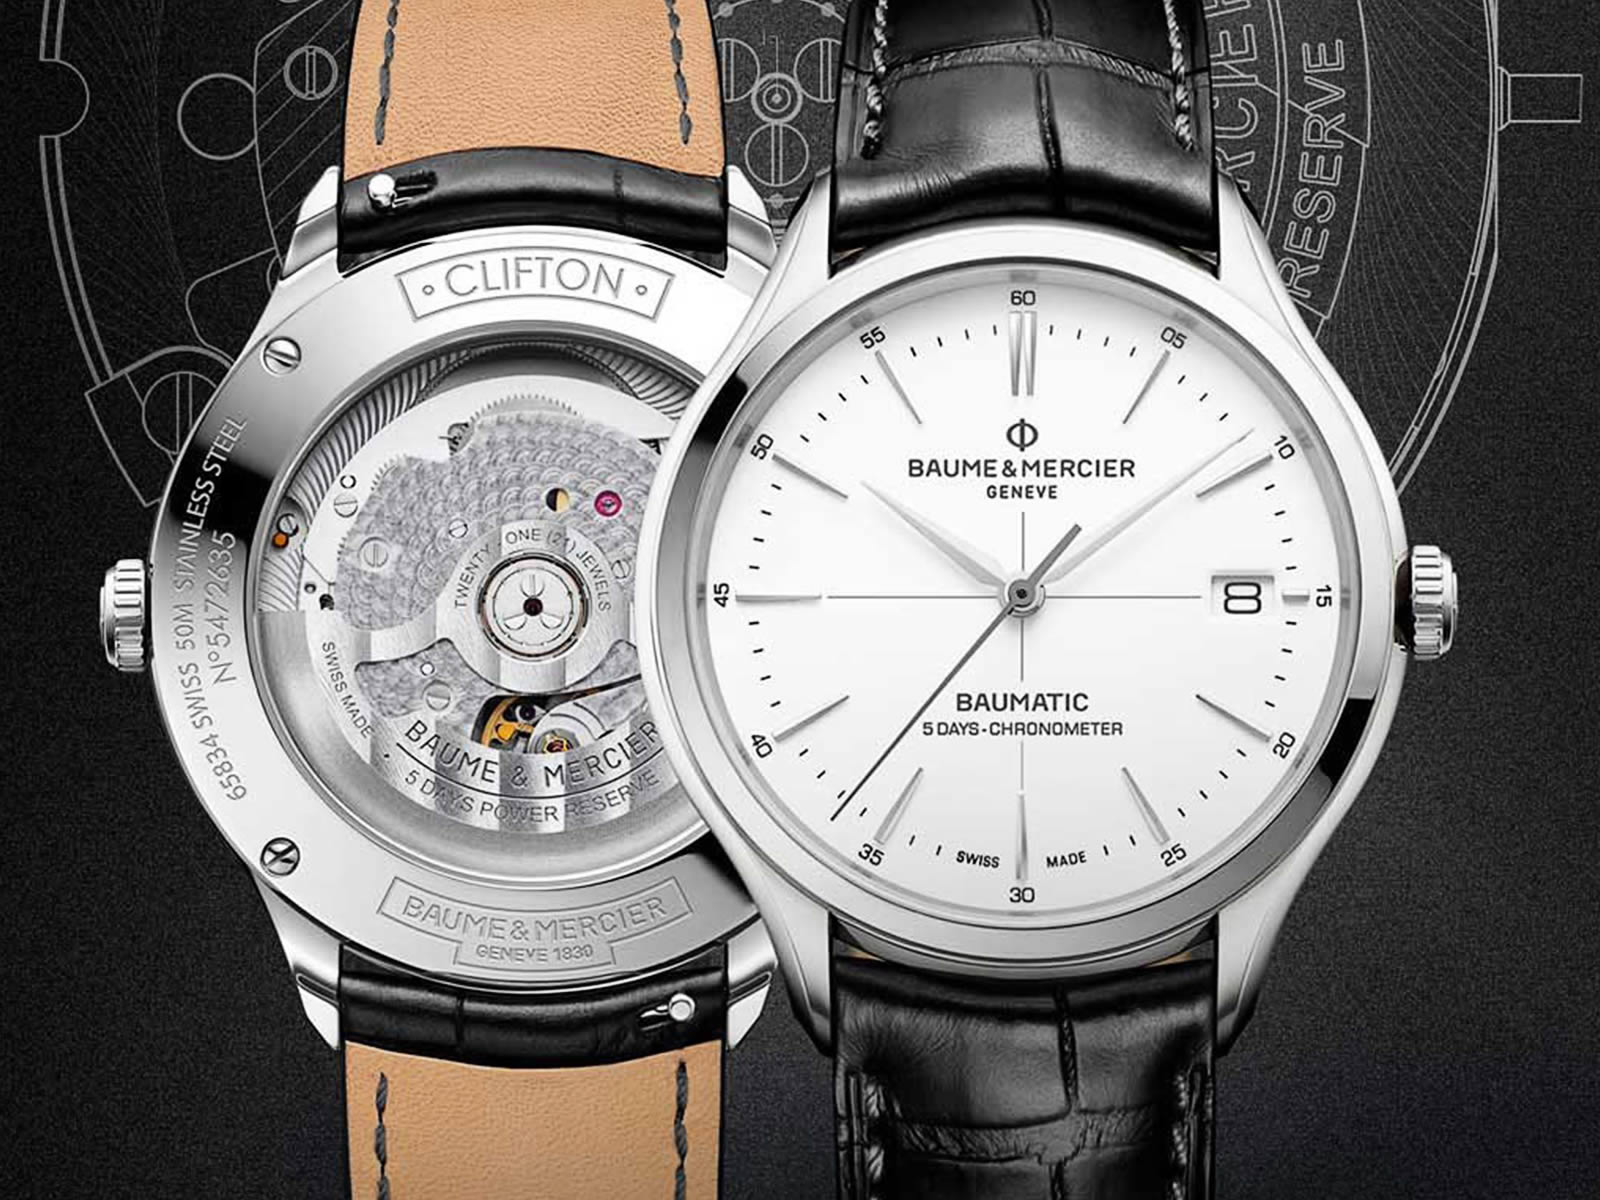 baume-mercier-clifton-baumatic-collection-2-.jpg